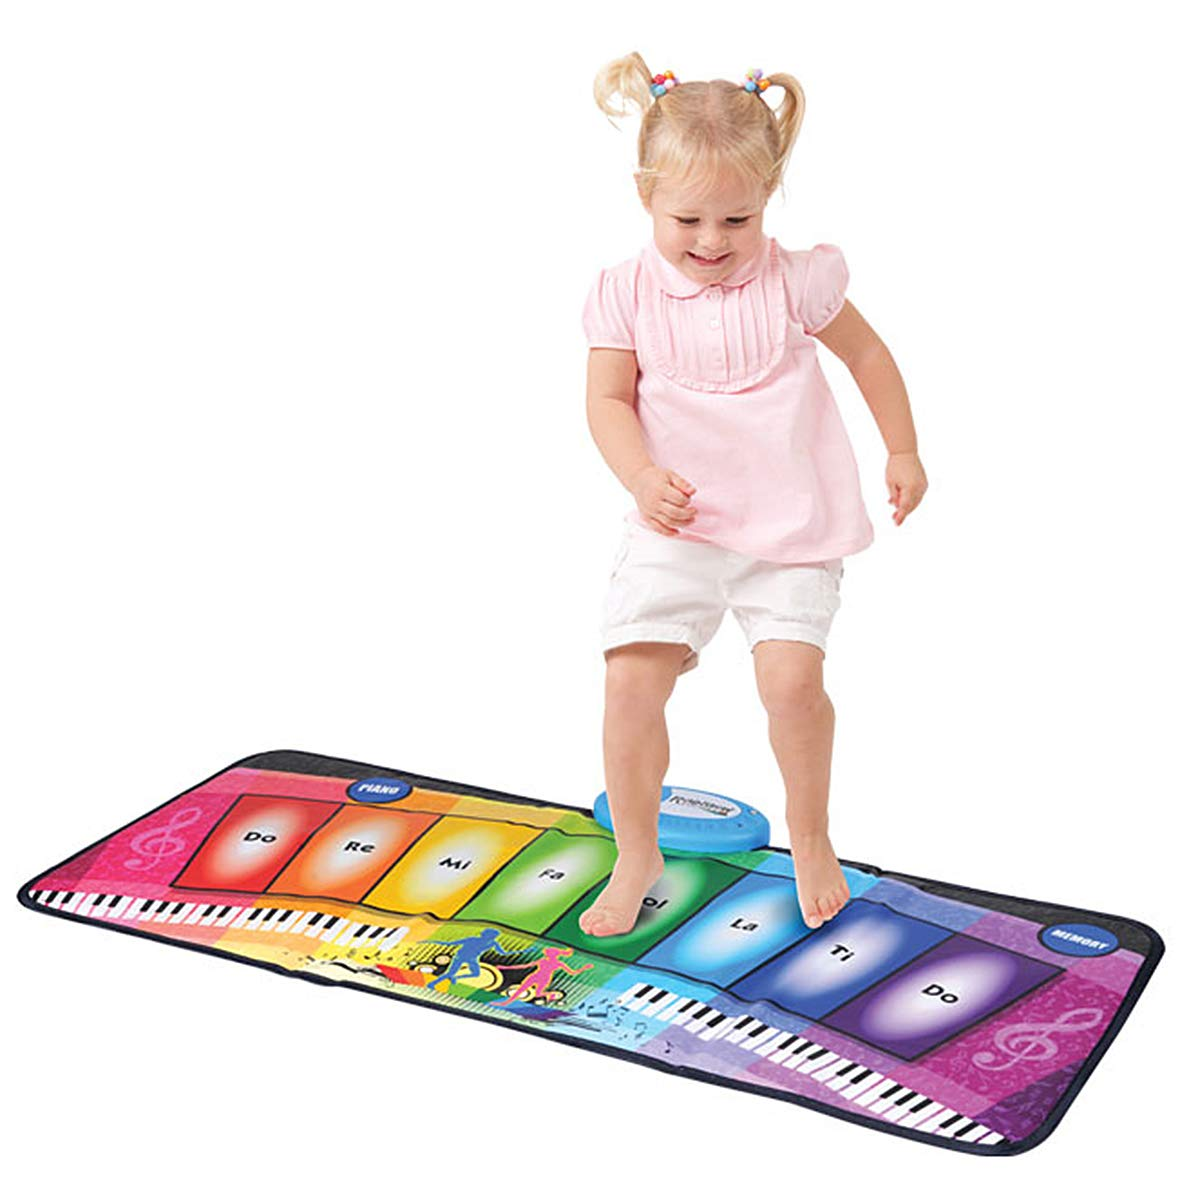 Children's Electronic Piano Mat, Electronic Music Game Pad Music Crawling Blanket Support Multi-Person Use by Eustoma (Image #2)